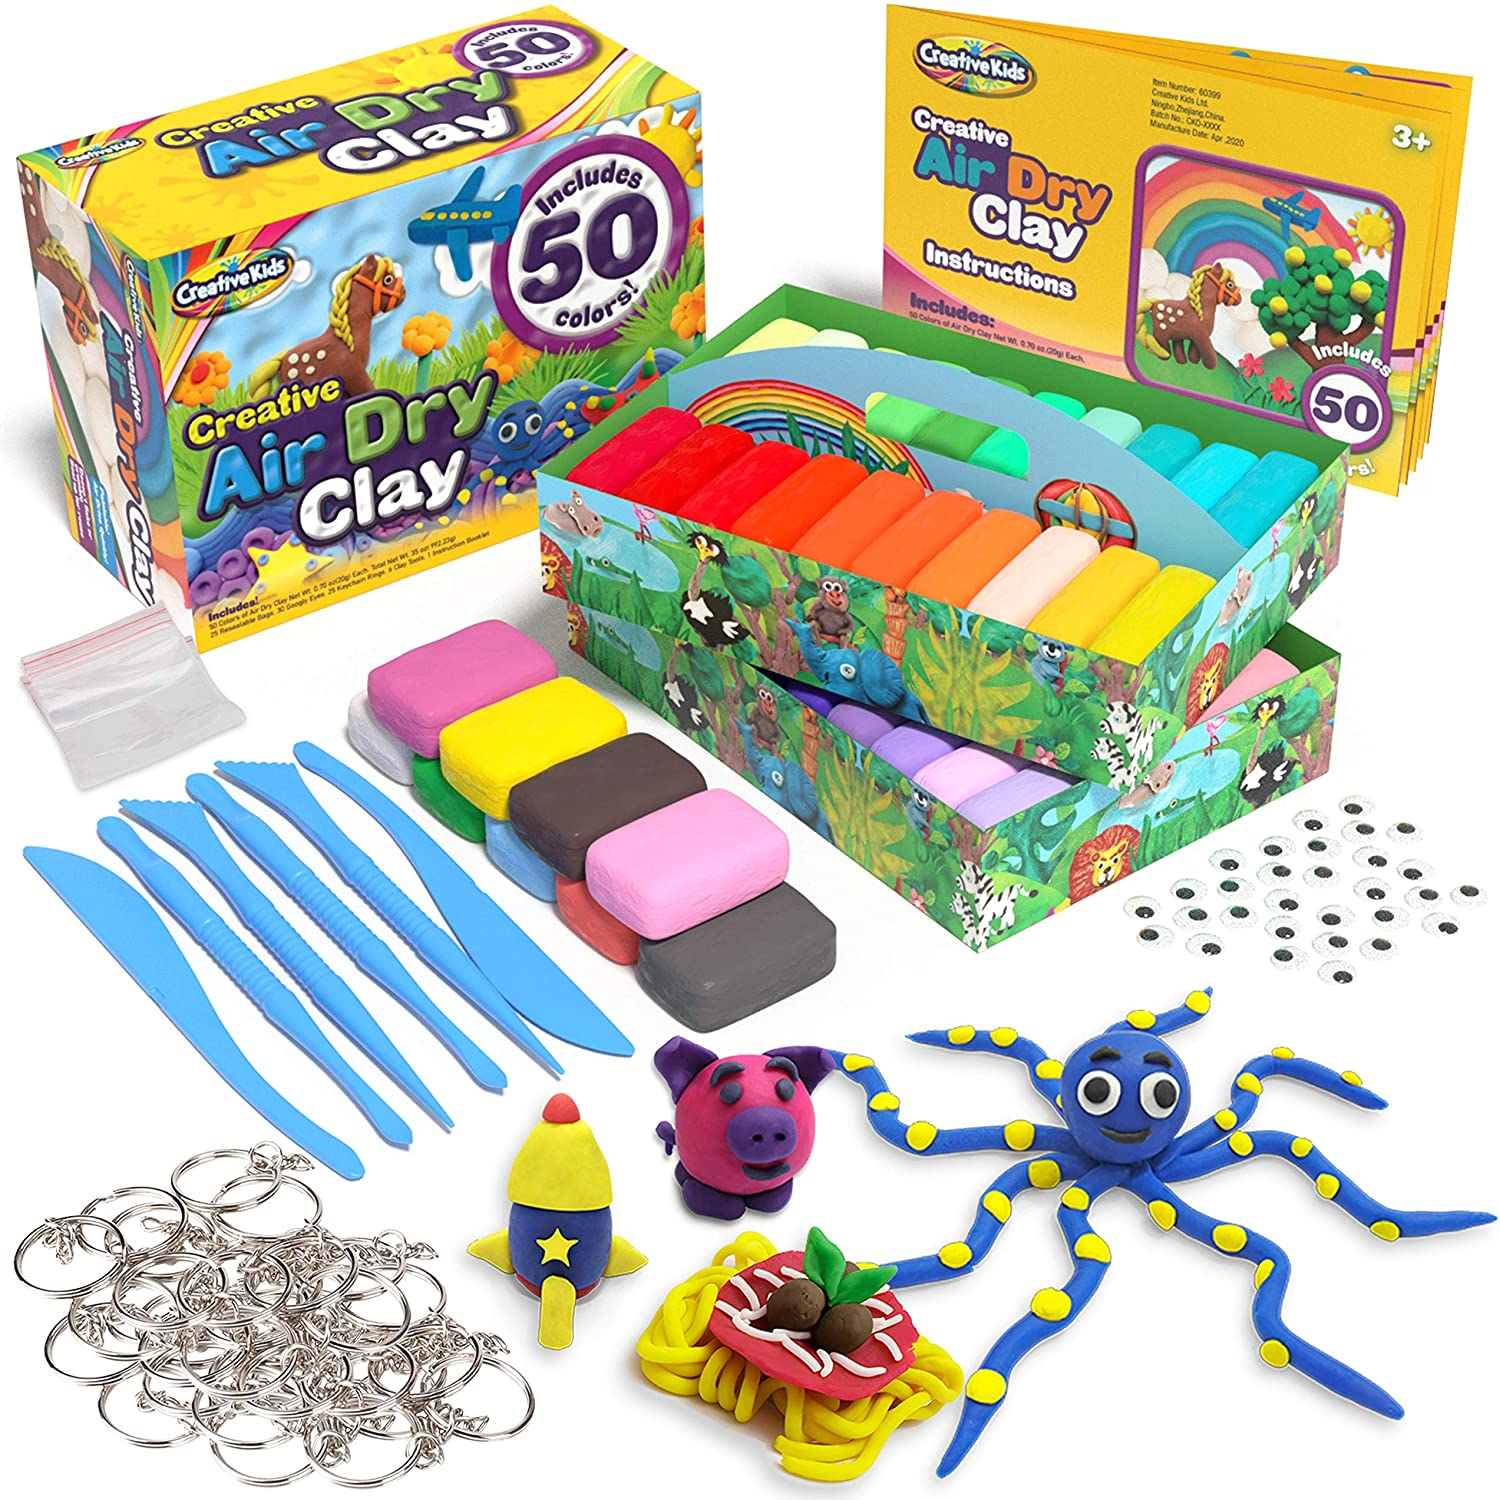 STEM Educational DIY Molding Set Gift for Boys /& Girls 3+ Creative Kids Air Dry Clay Modeling Crafts Kit Super Light Nontoxic 50 Pack Easy Instructions 50 Vibrant Colors /& 6 Clay Tools